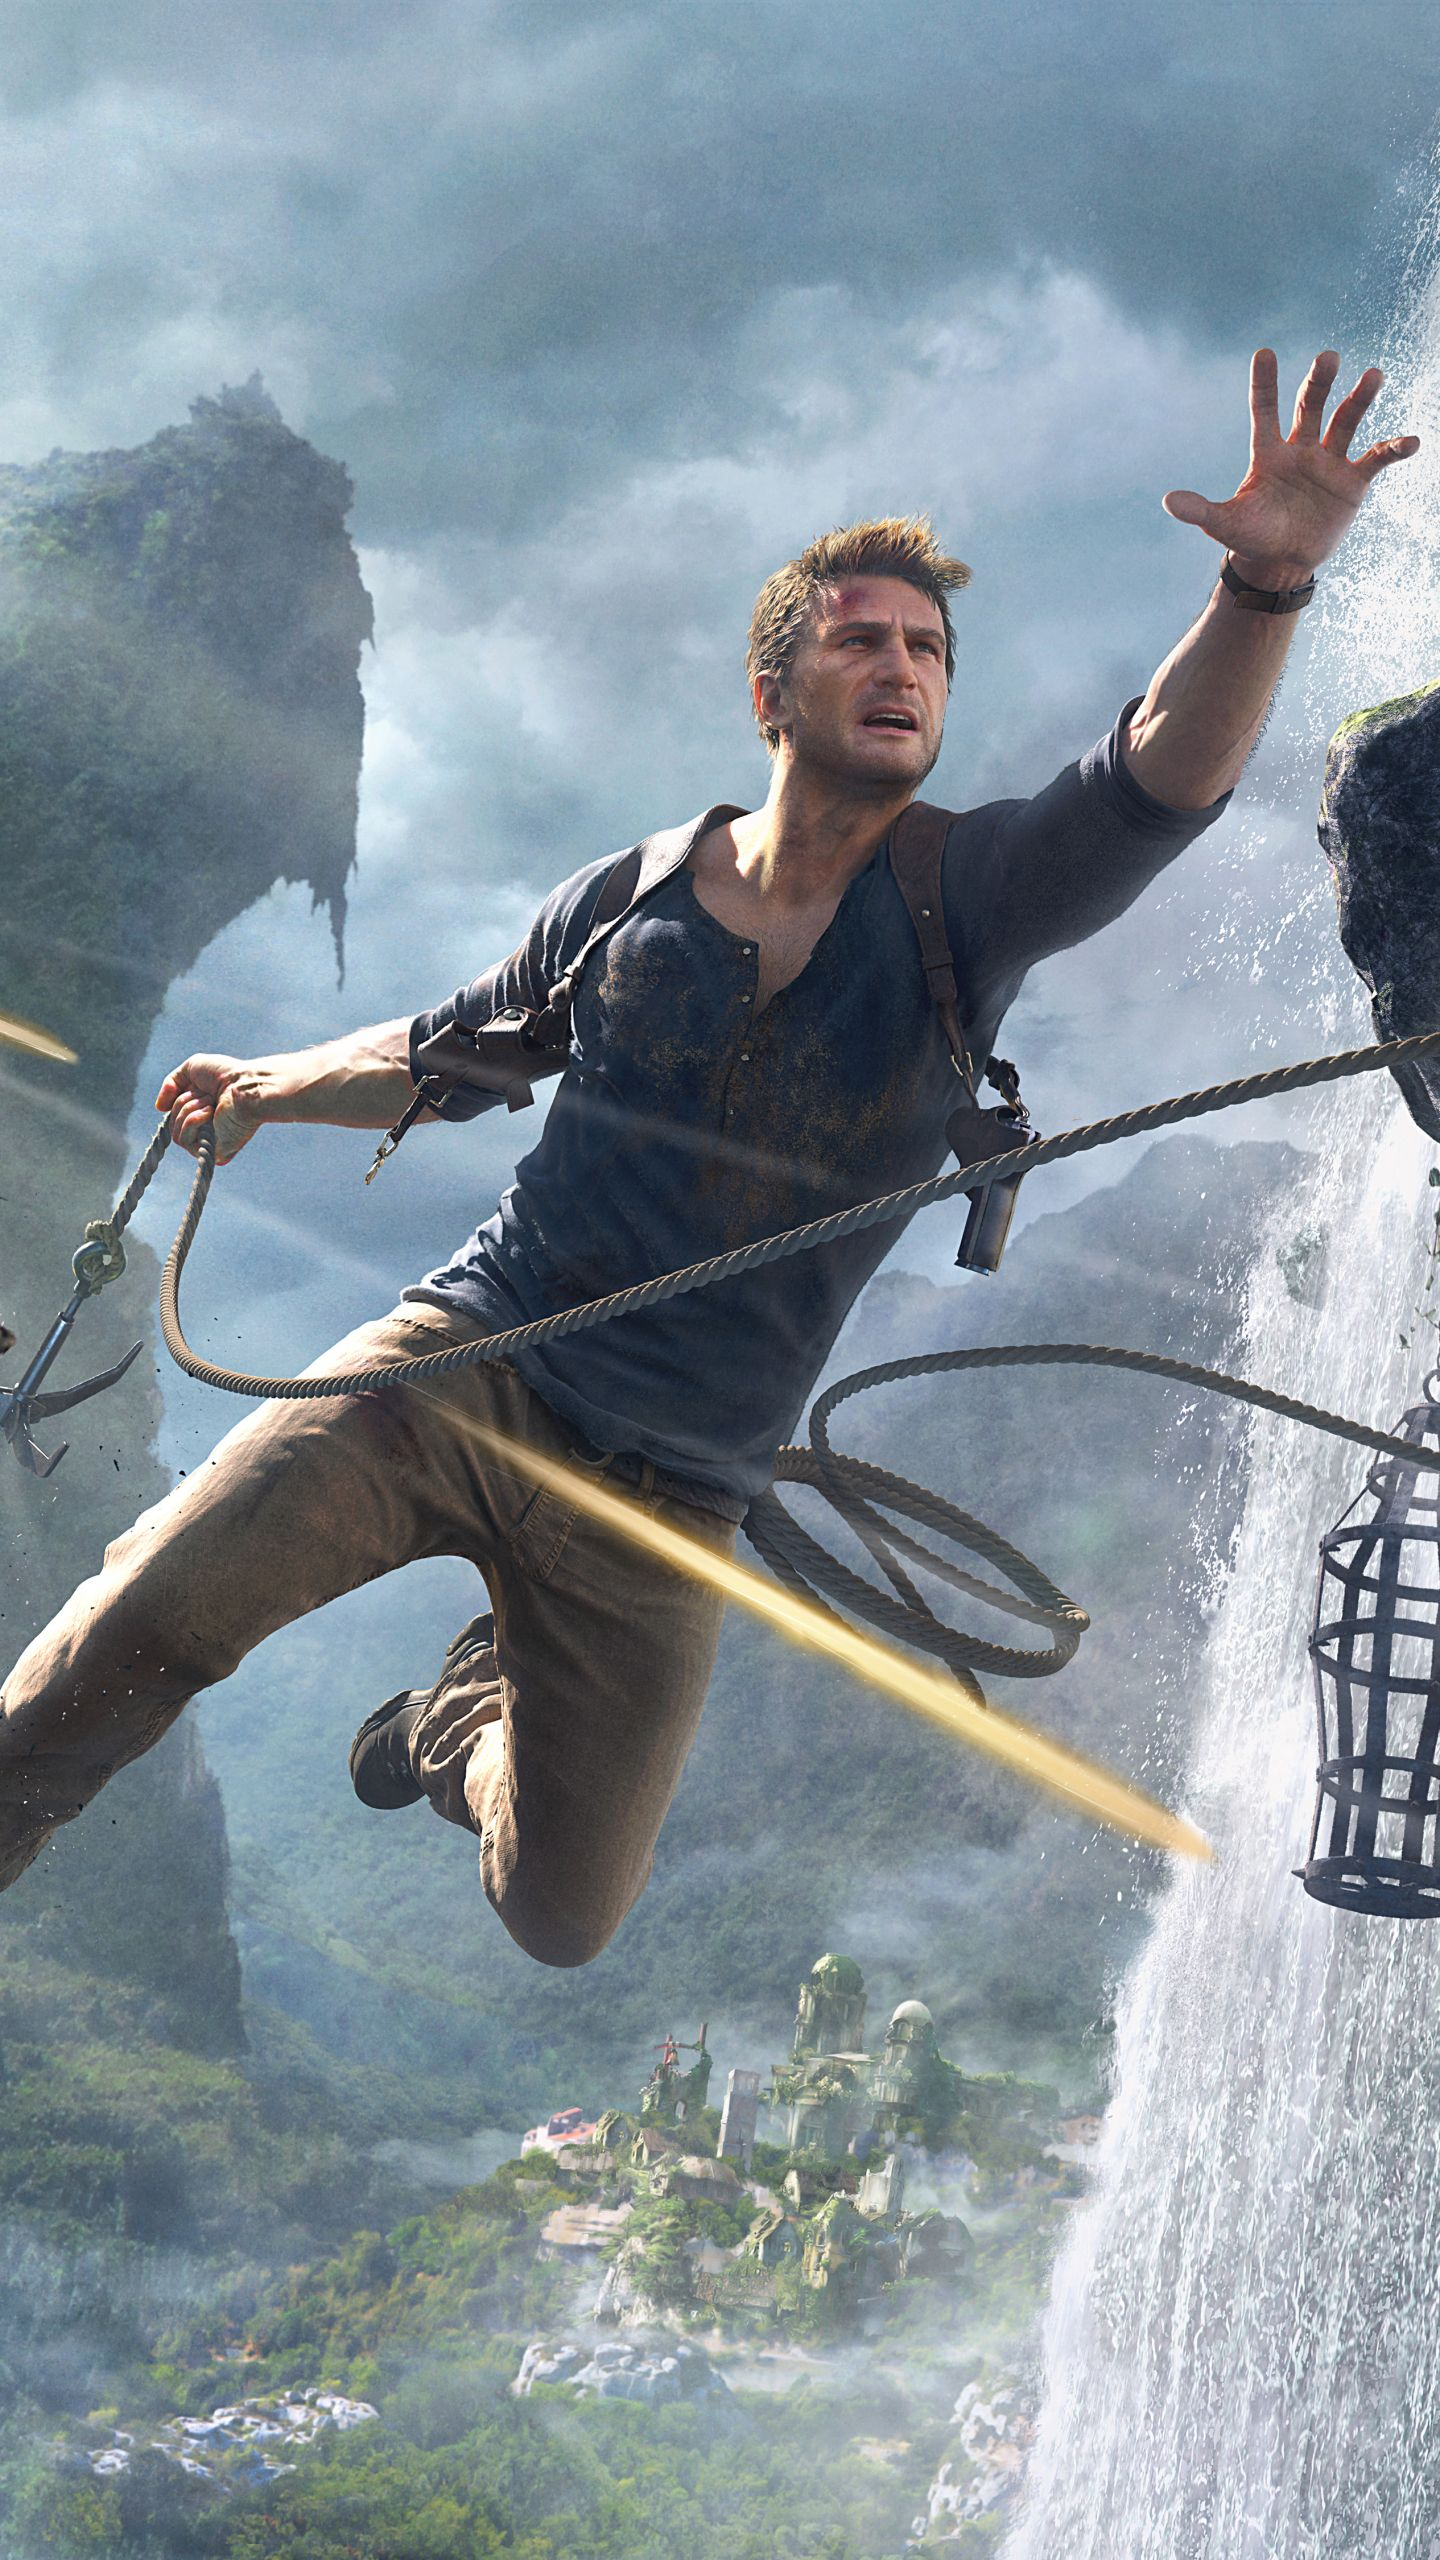 Video Game Uncharted 4 A Thief S End Uncharted Nathan Drake Mobile Wallpaper Uncharted Uncharted Game Nathan Drake